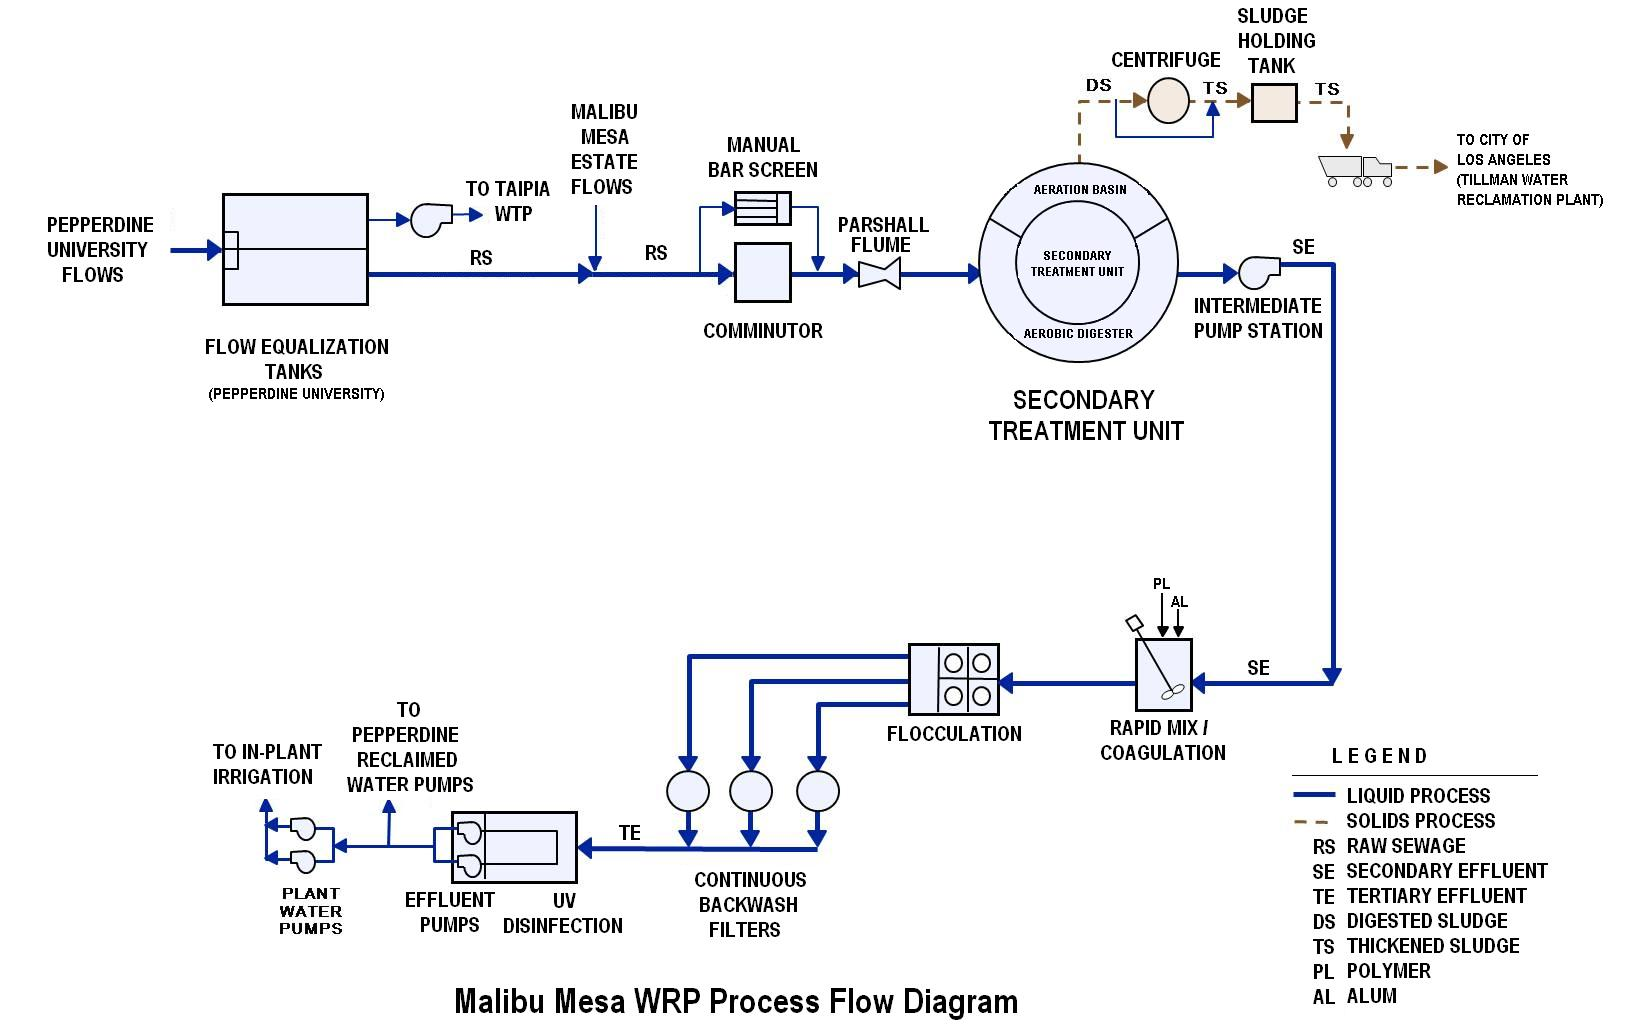 Process flow diagram wastewater treatment plant blueraritanfo malibu mesa wastewater reclamation plant wiring diagram nvjuhfo Image collections